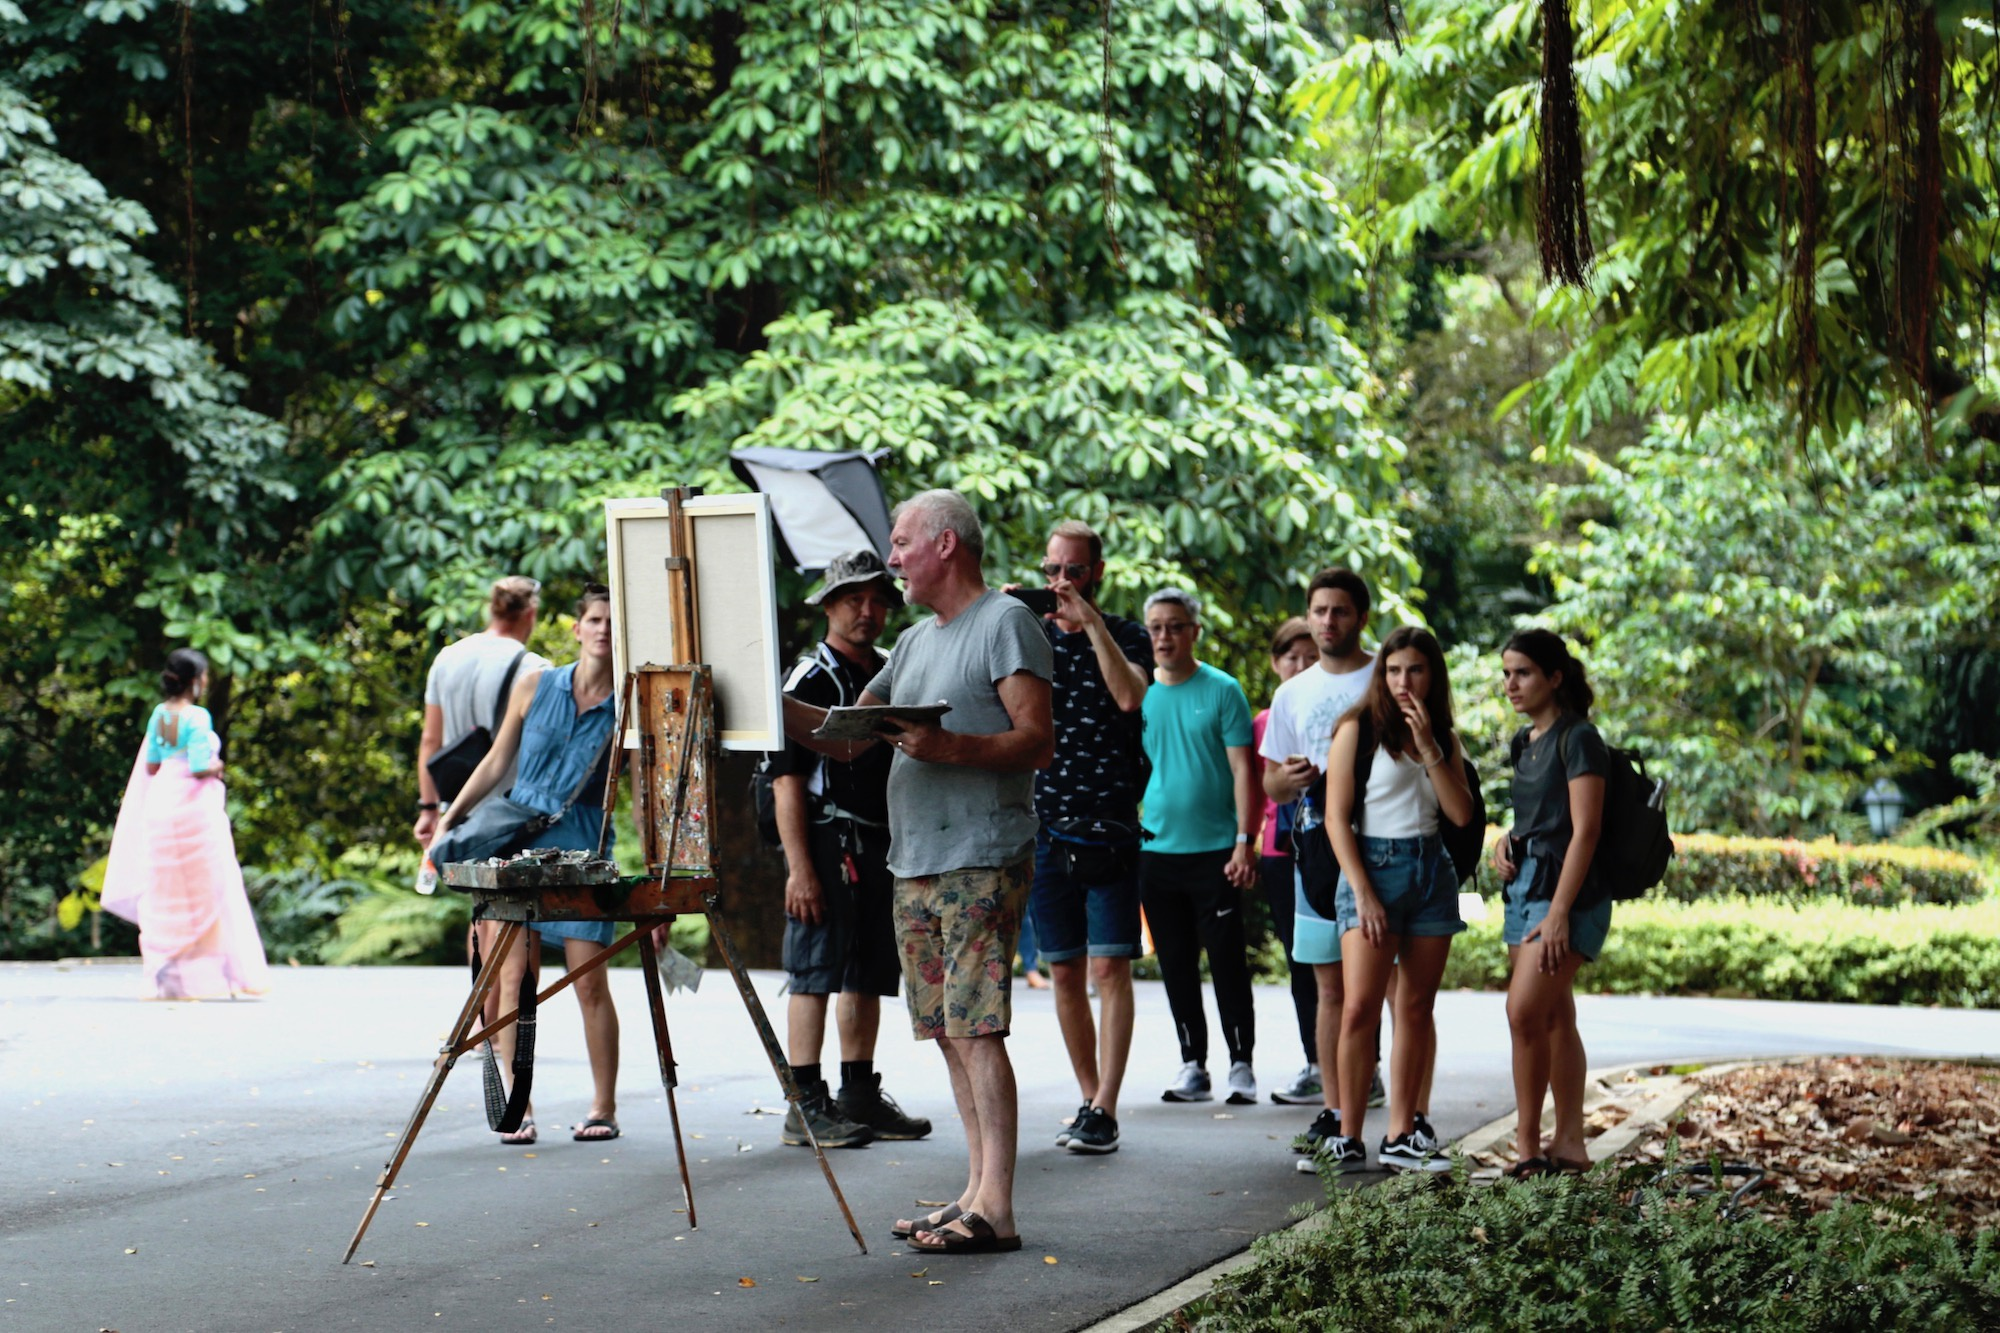 Gerard Byrne_painting_Bandstand_Weekend_Vibes_Singapore Botanic_Gardens_2019_DFA_Asia_Pacific_Strategy_2025